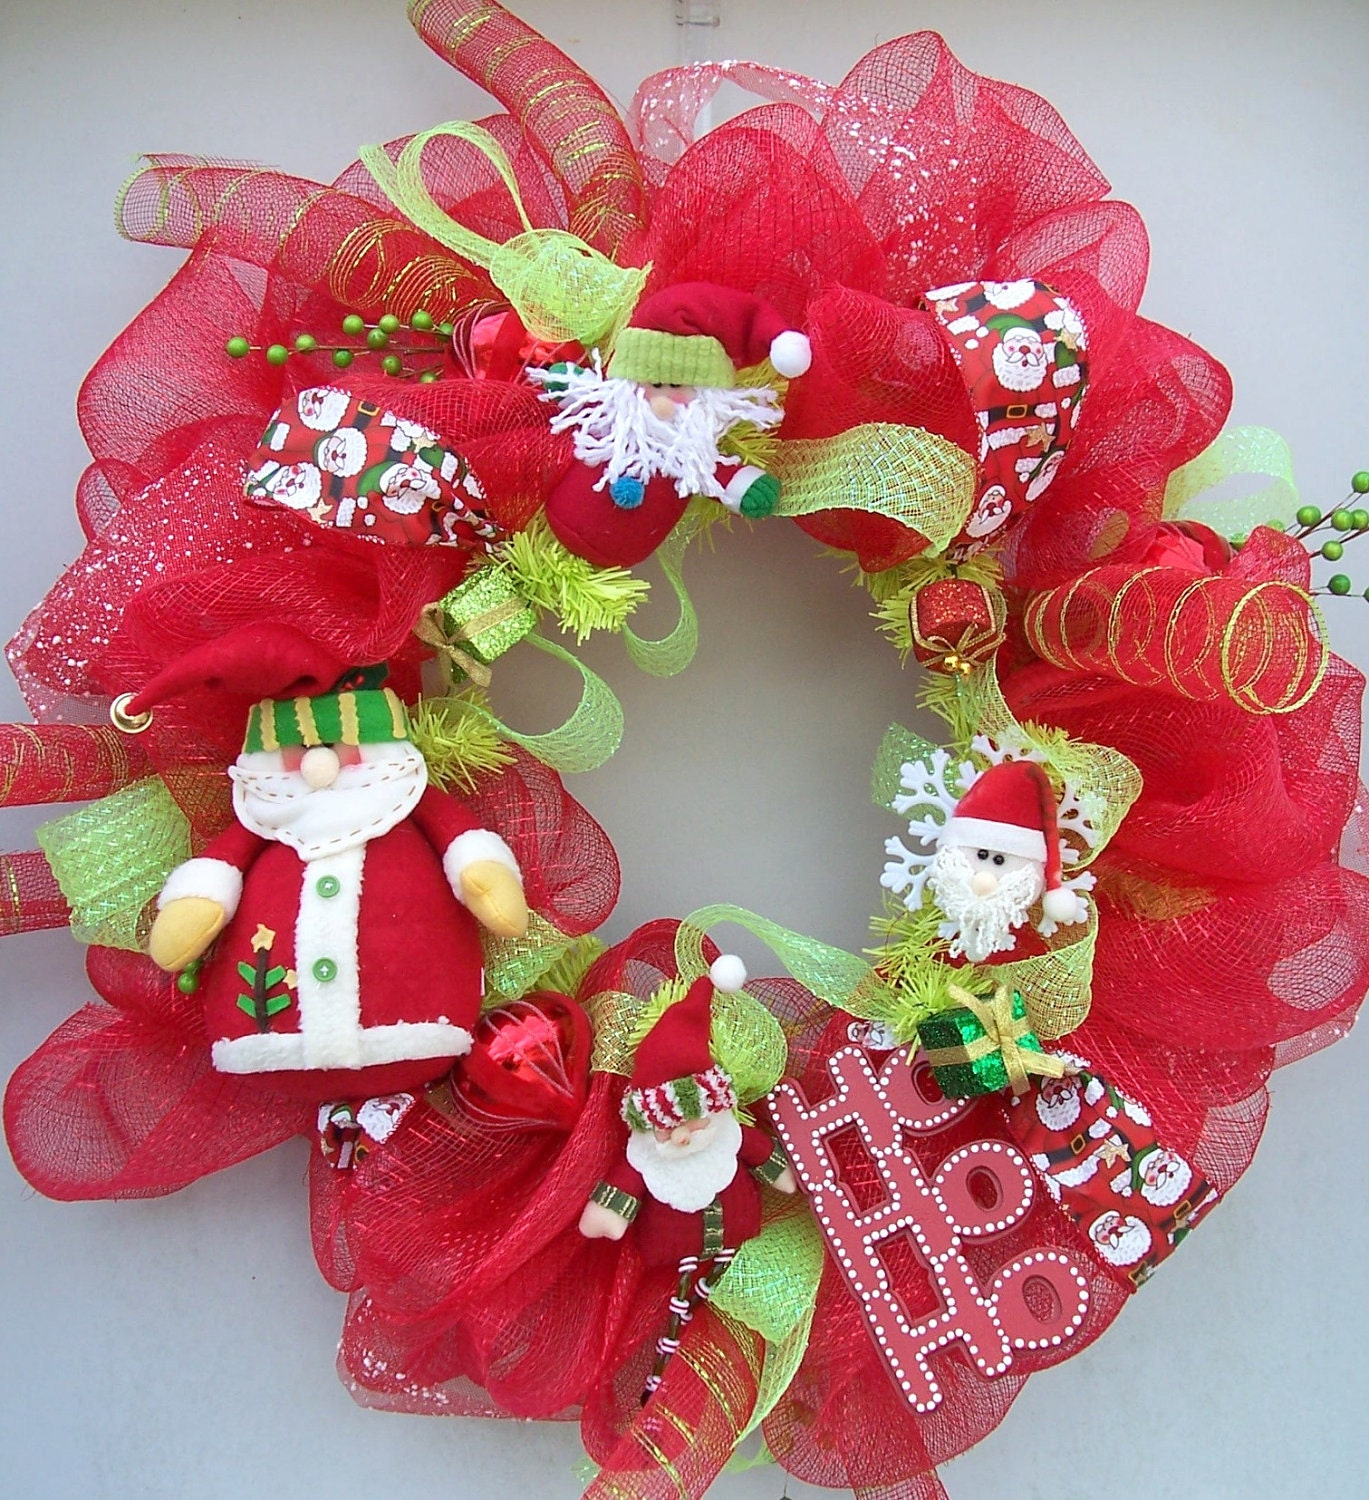 Christmas wreath with Santa